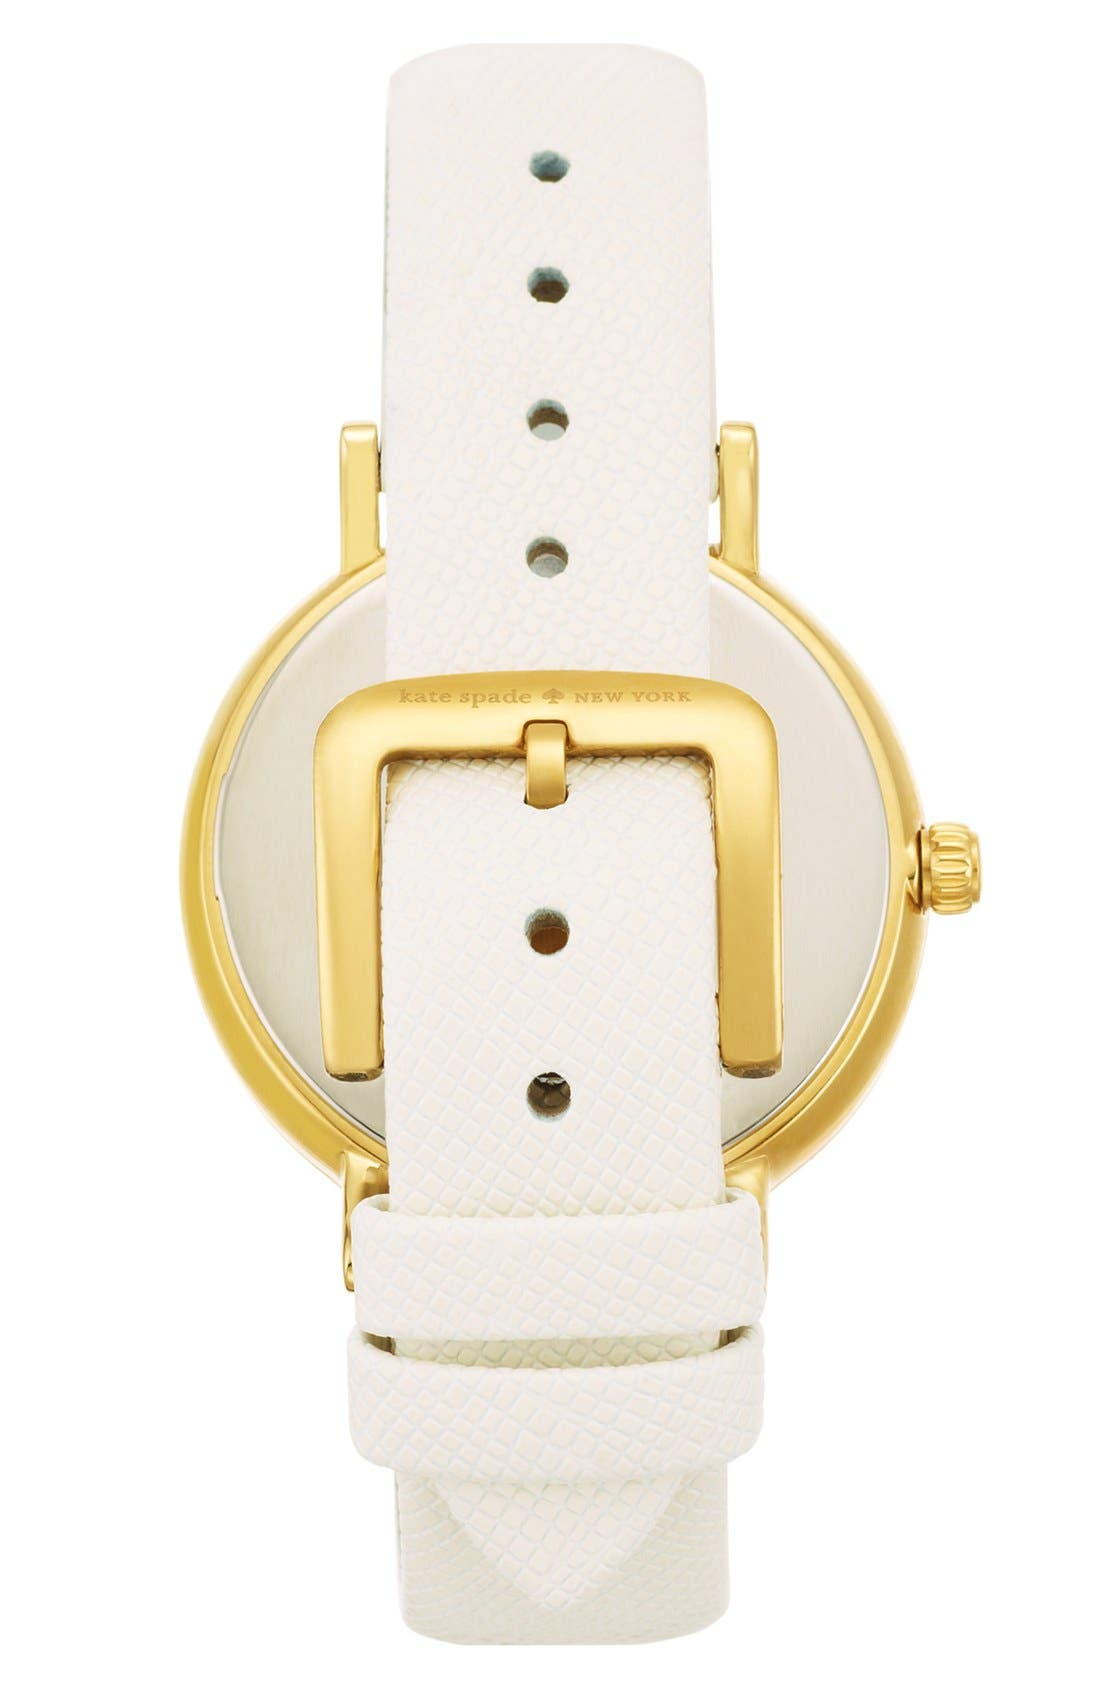 KATE SPADE NEW YORK,                             'metro' enamel bezel leather strap watch, 38mm,                             Alternate thumbnail 3, color,                             100